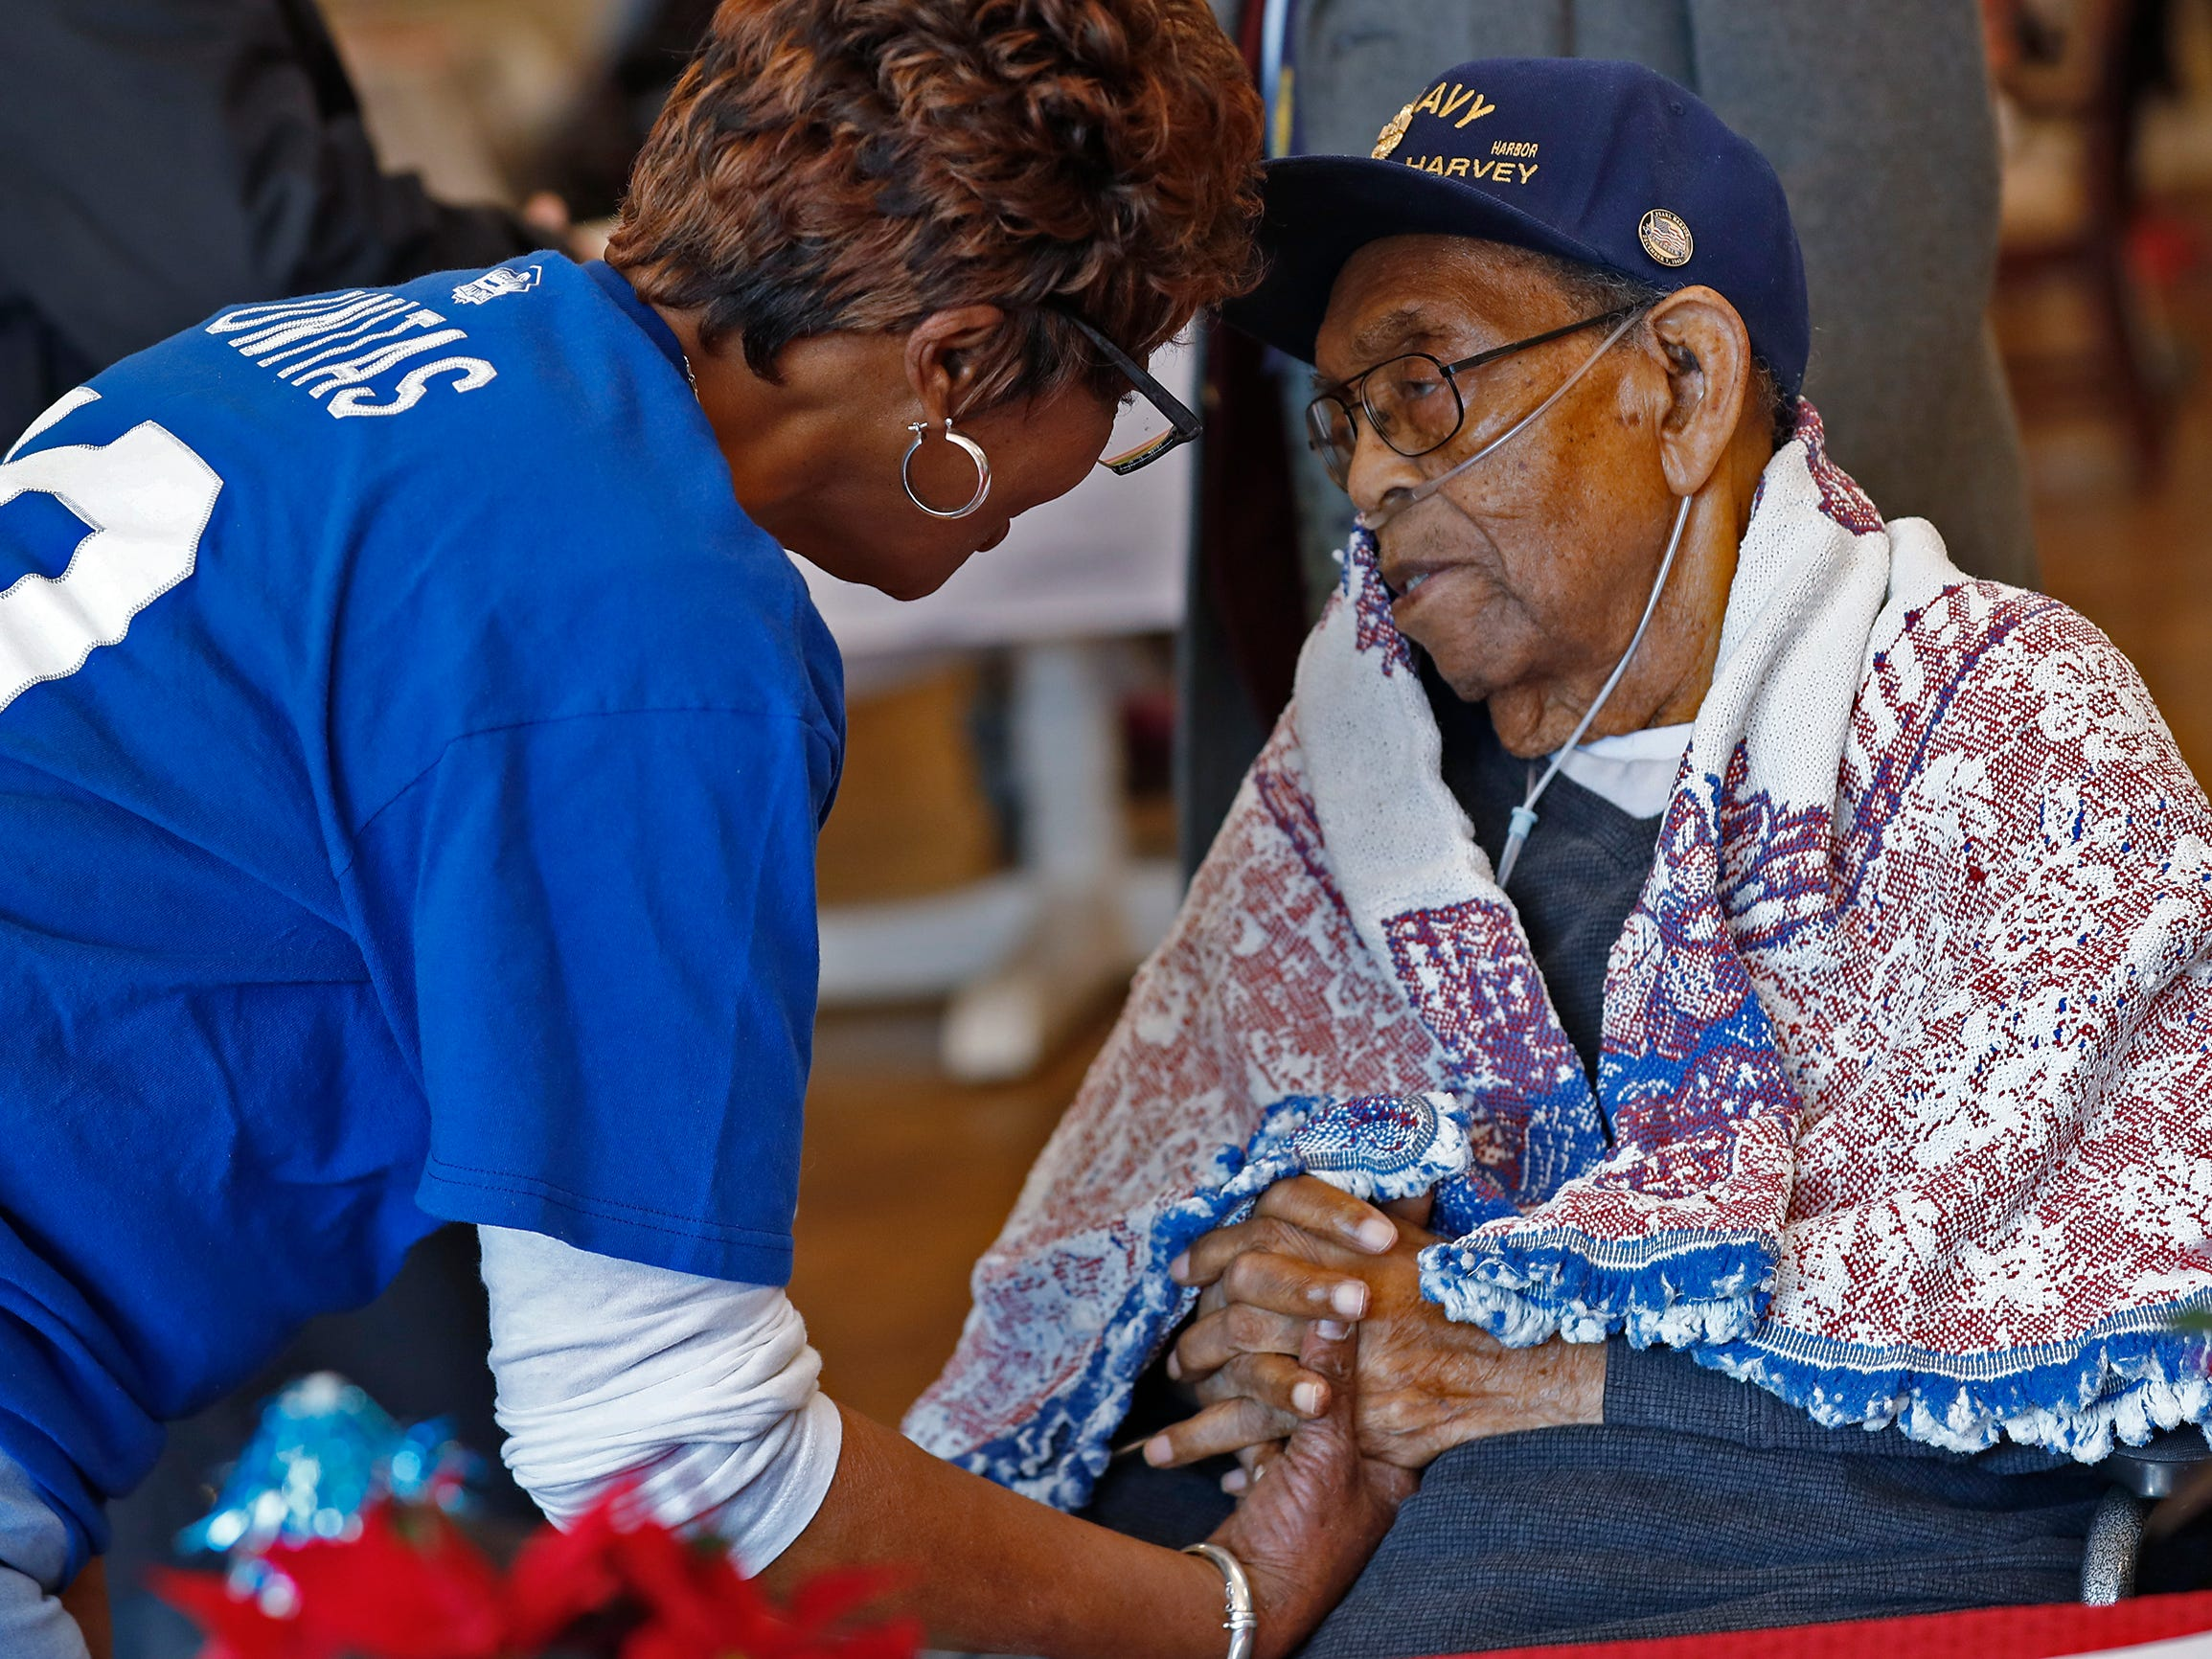 Pearl Harbor attack survivor William Harvey, right, speaks to CNA Lolita Ellis at the Alpha Home where Harvey lives, Friday, Dec. 7, 2018.  Harvey was unable to attend a Pearl Harbor Day Remembrance at Riverside High School, so several members with The American Legion came to visit him.  The former Heslar Naval Armory, now Riverside High School, used to host the event to remember those who died and to honor those who survived in the Dec. 7, 1941 Japanese attack on Pearl Harbor which plunged the United States into World War II.  This year, the event was brought back.  There was also a 21-gun salute, taps played, and a wreath tossing ceremony on the banks of the White River adjacent to the school.